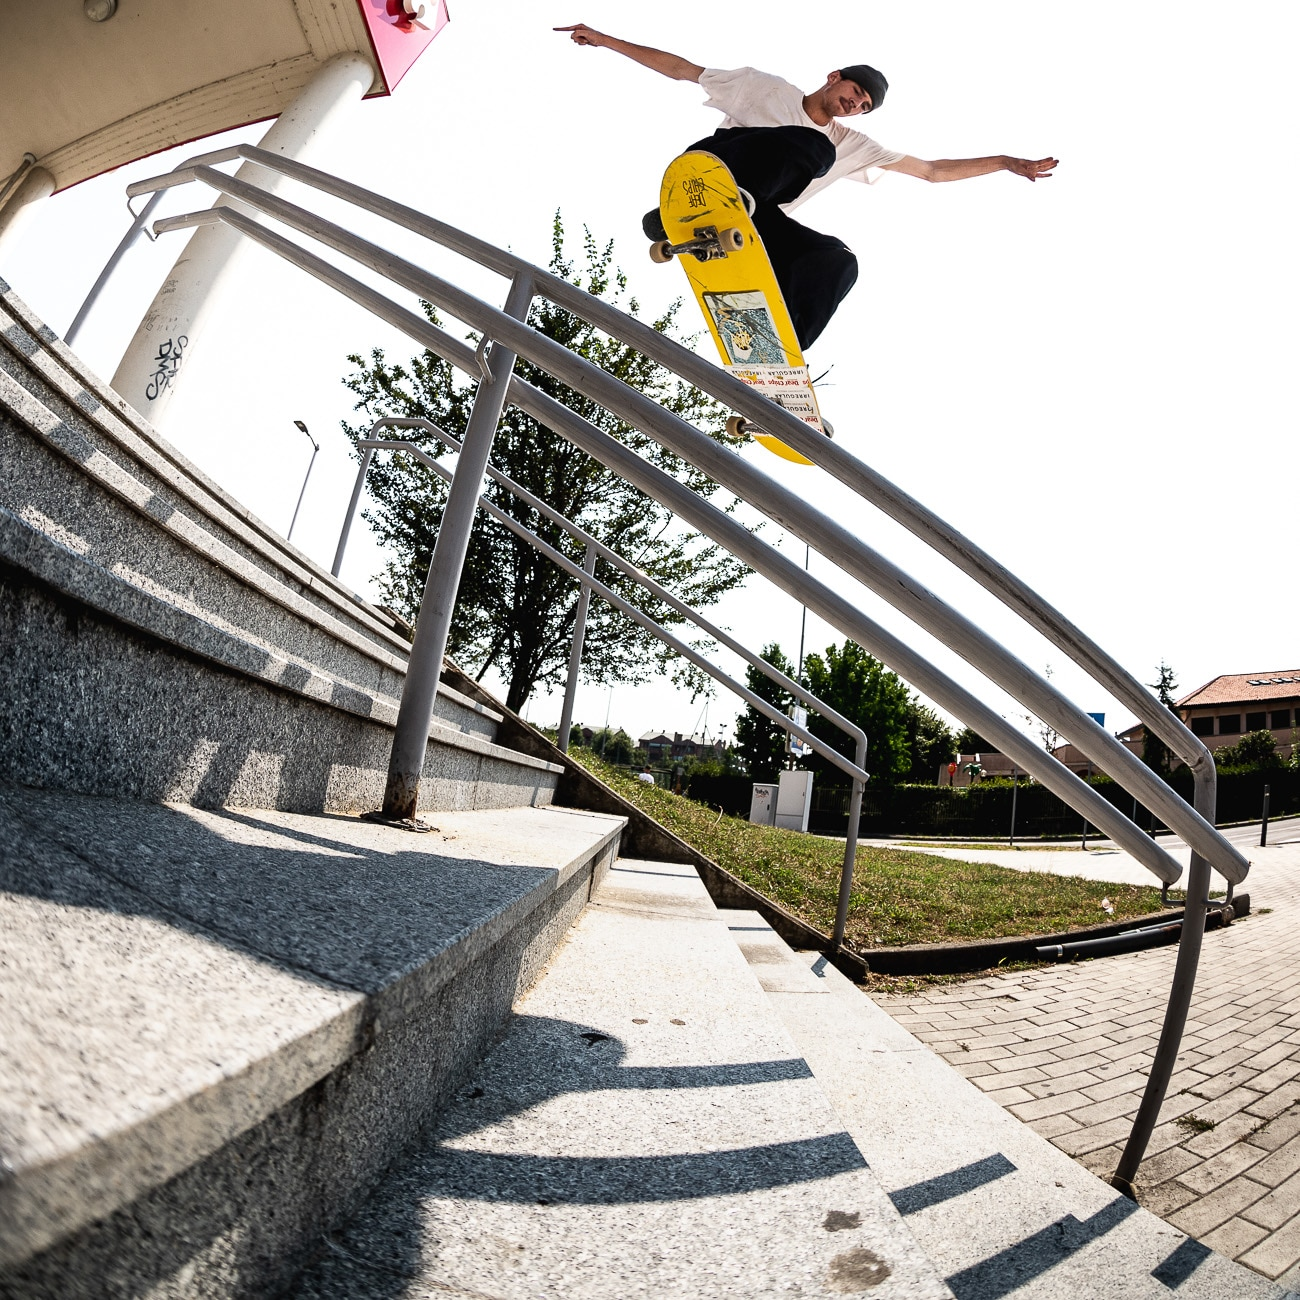 deaf-chips-irregularskatemag-milano-tour-hannes-mautner-photo-35